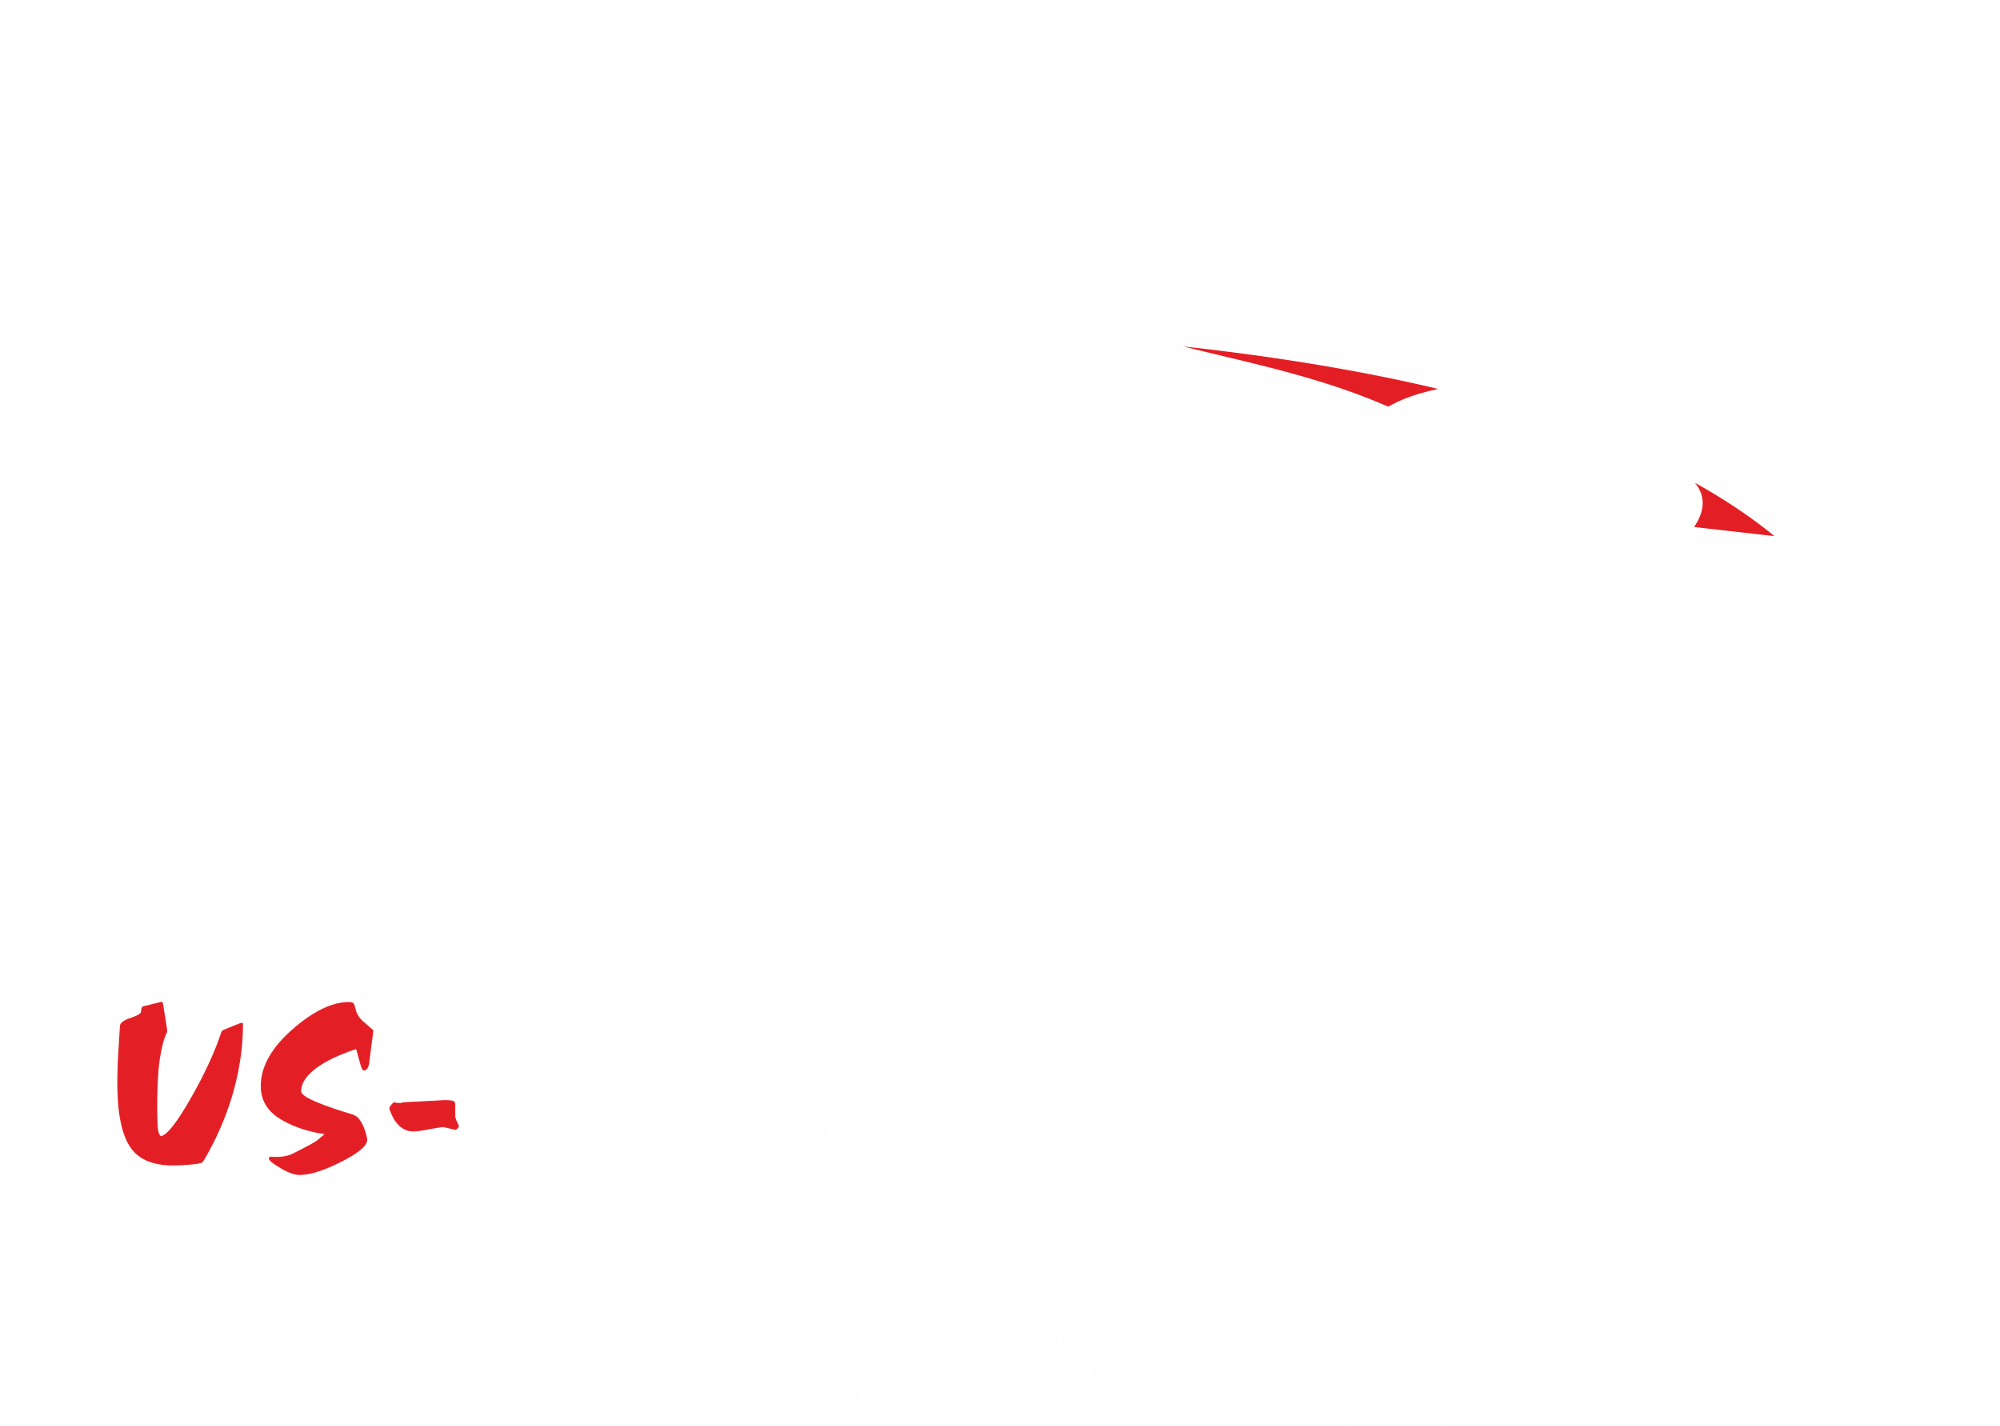 US-Fishing & Hunting Shop